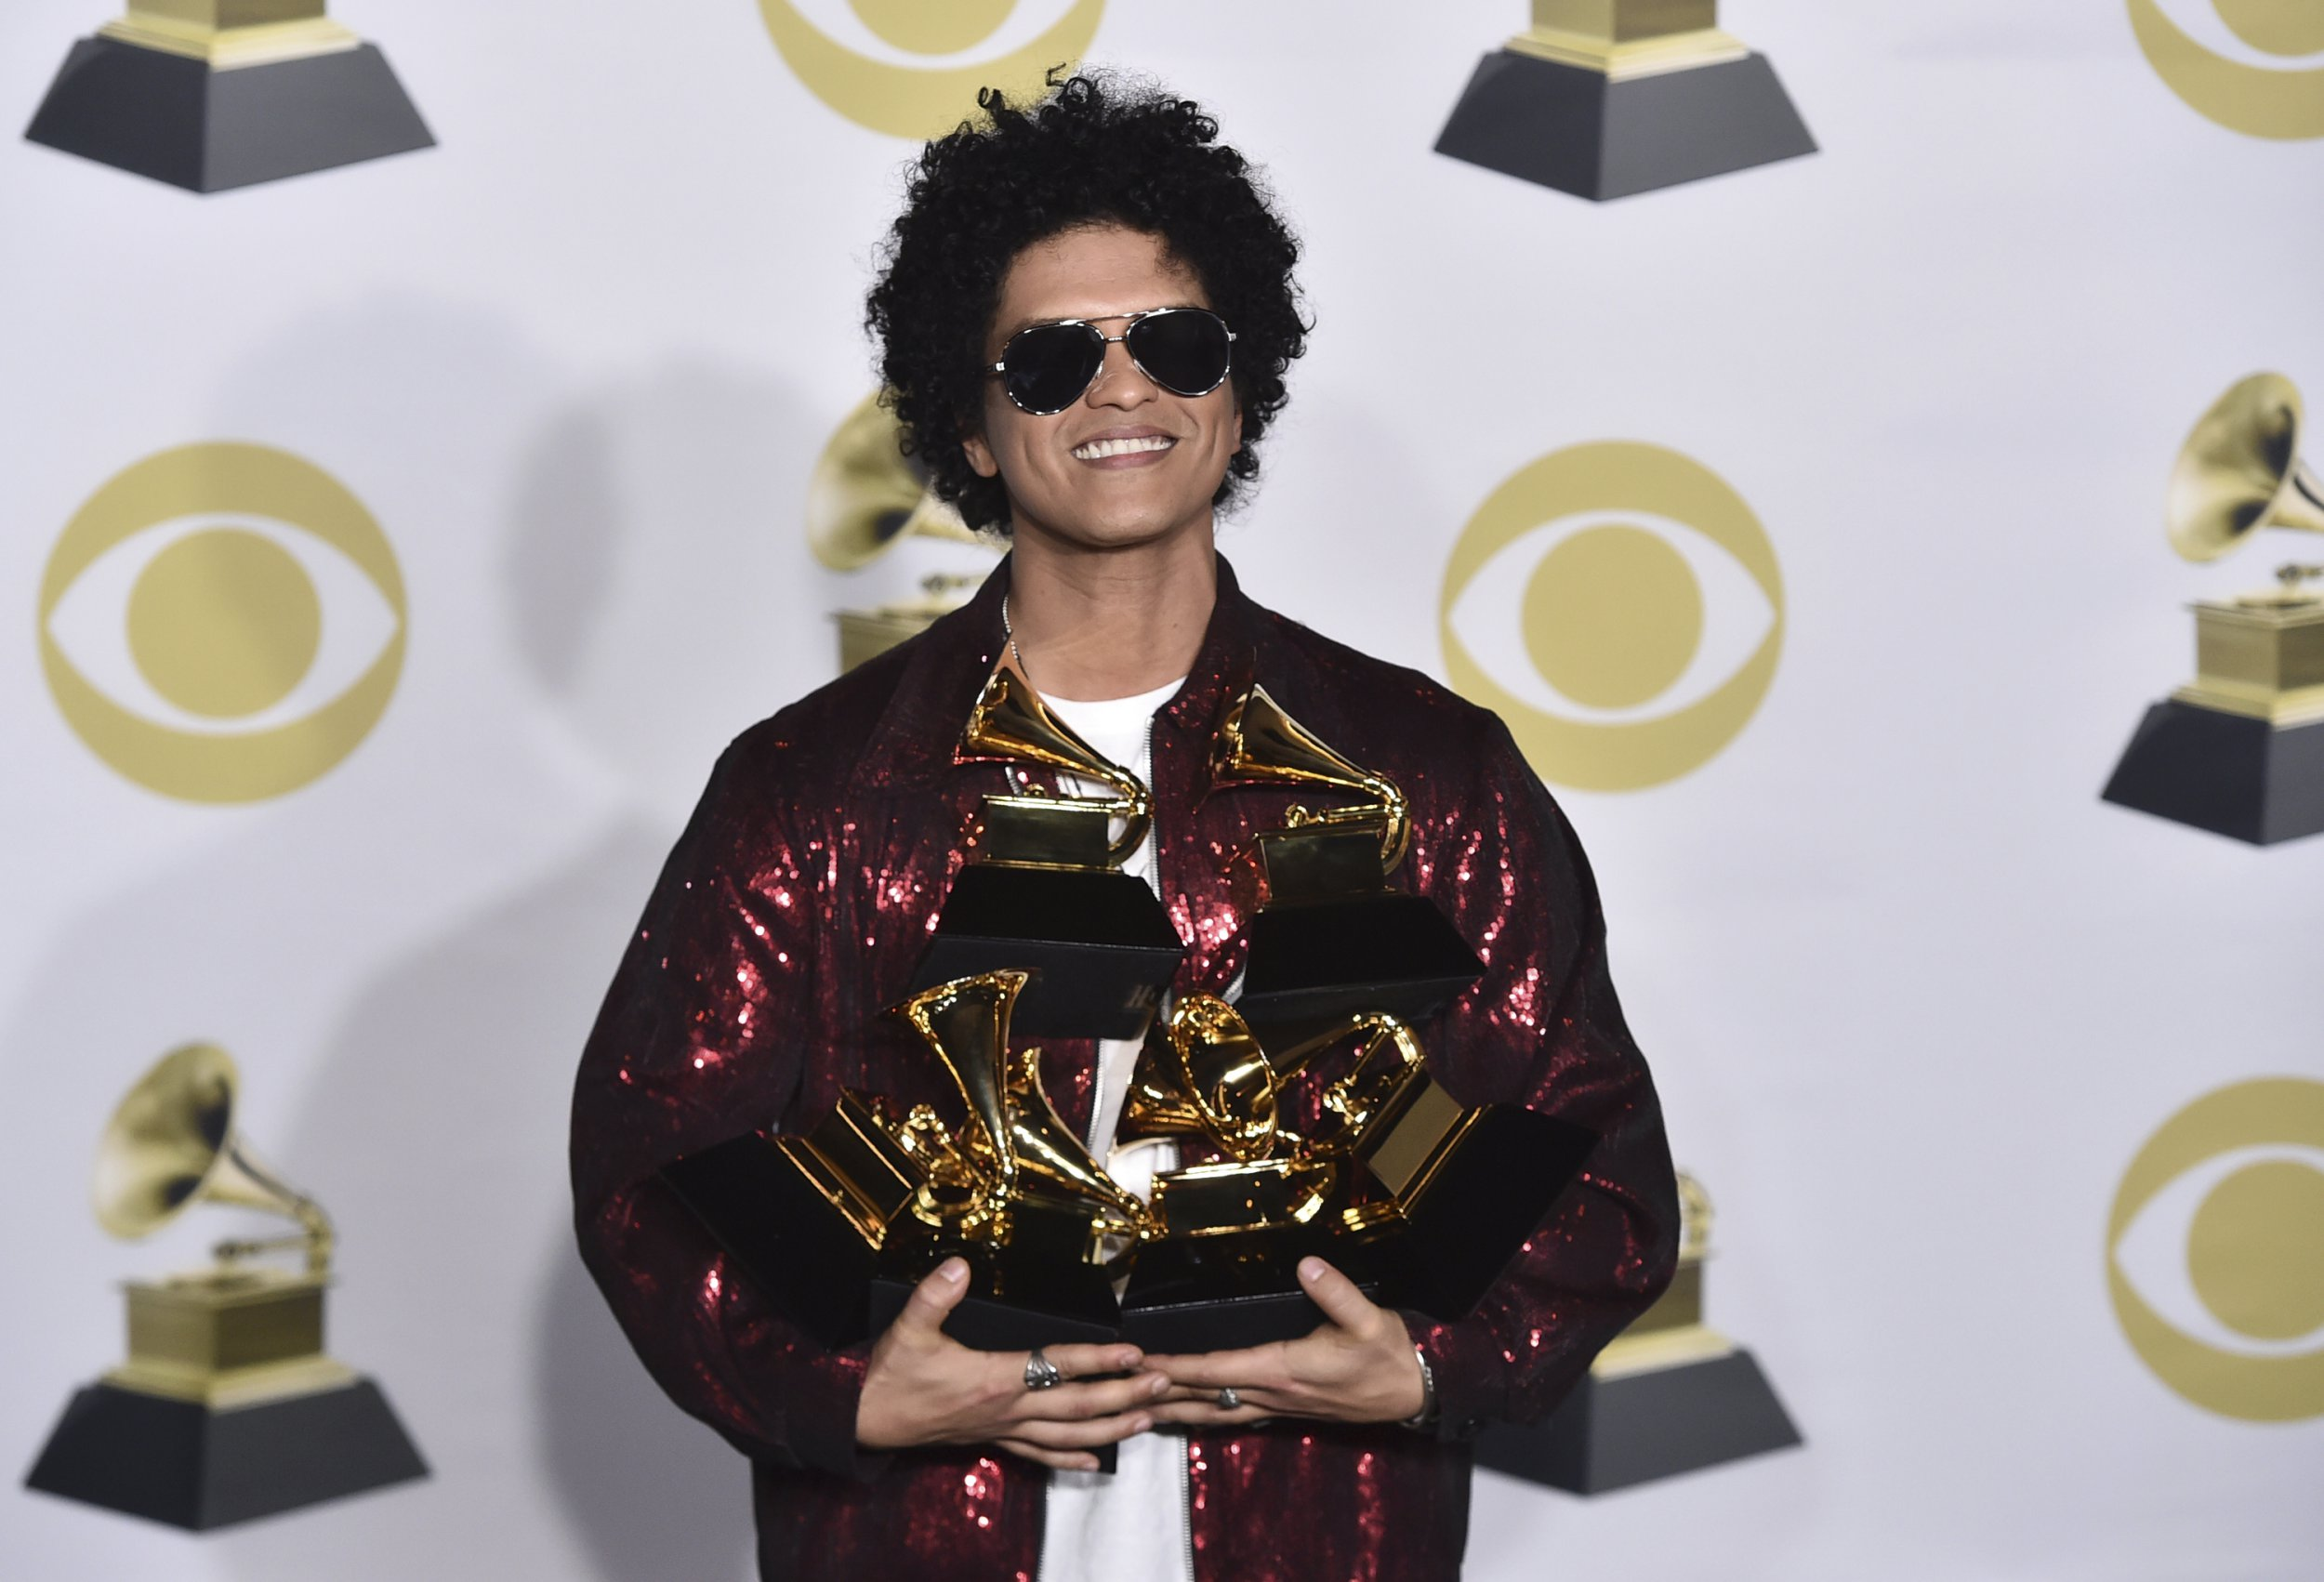 Grammy winners list 2018 – Bruno Mars, Kendrick Lamar and Ed Sheeran all feature